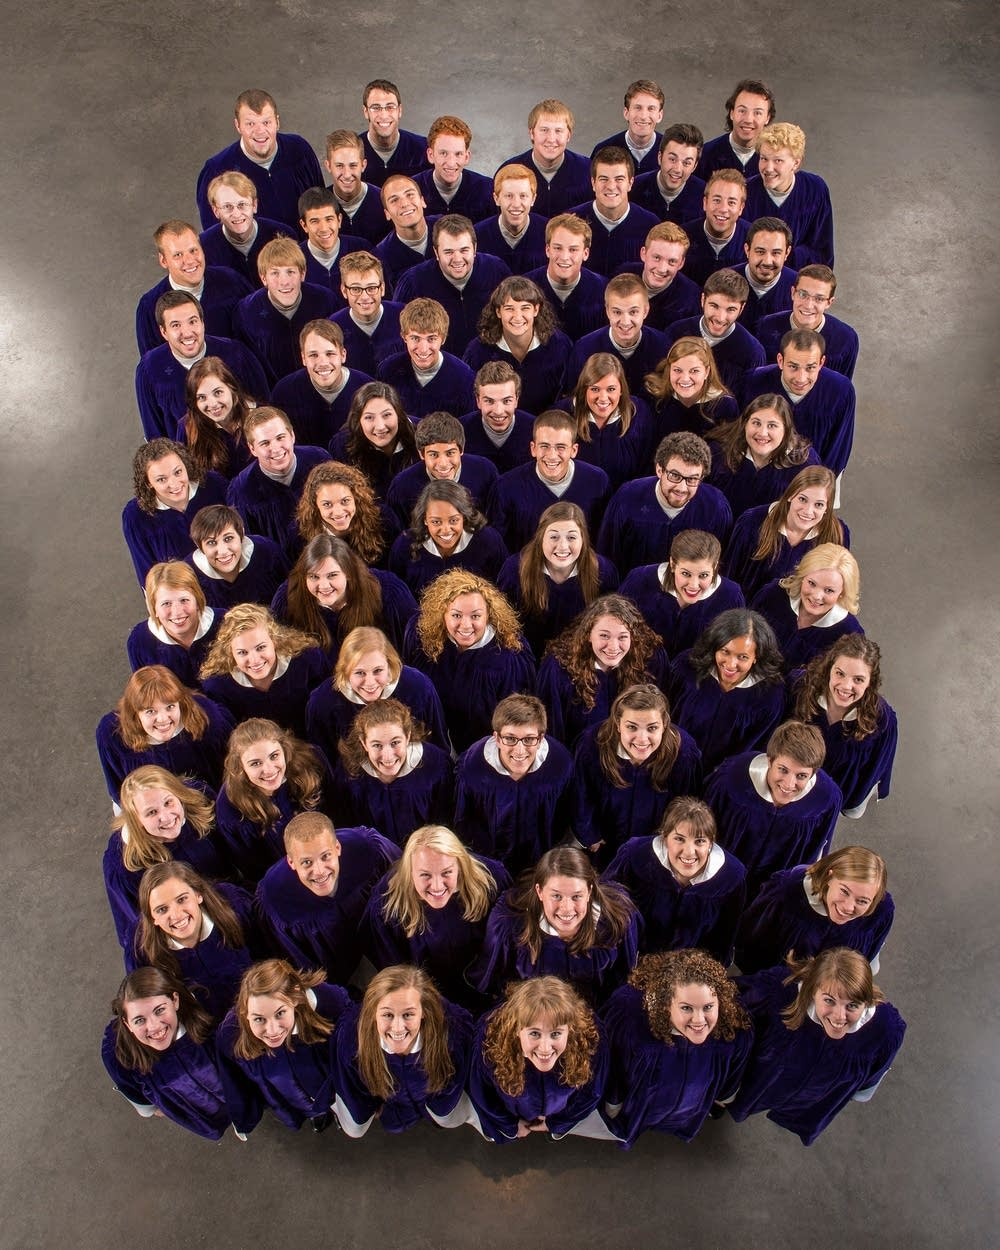 St. Olaf Choir